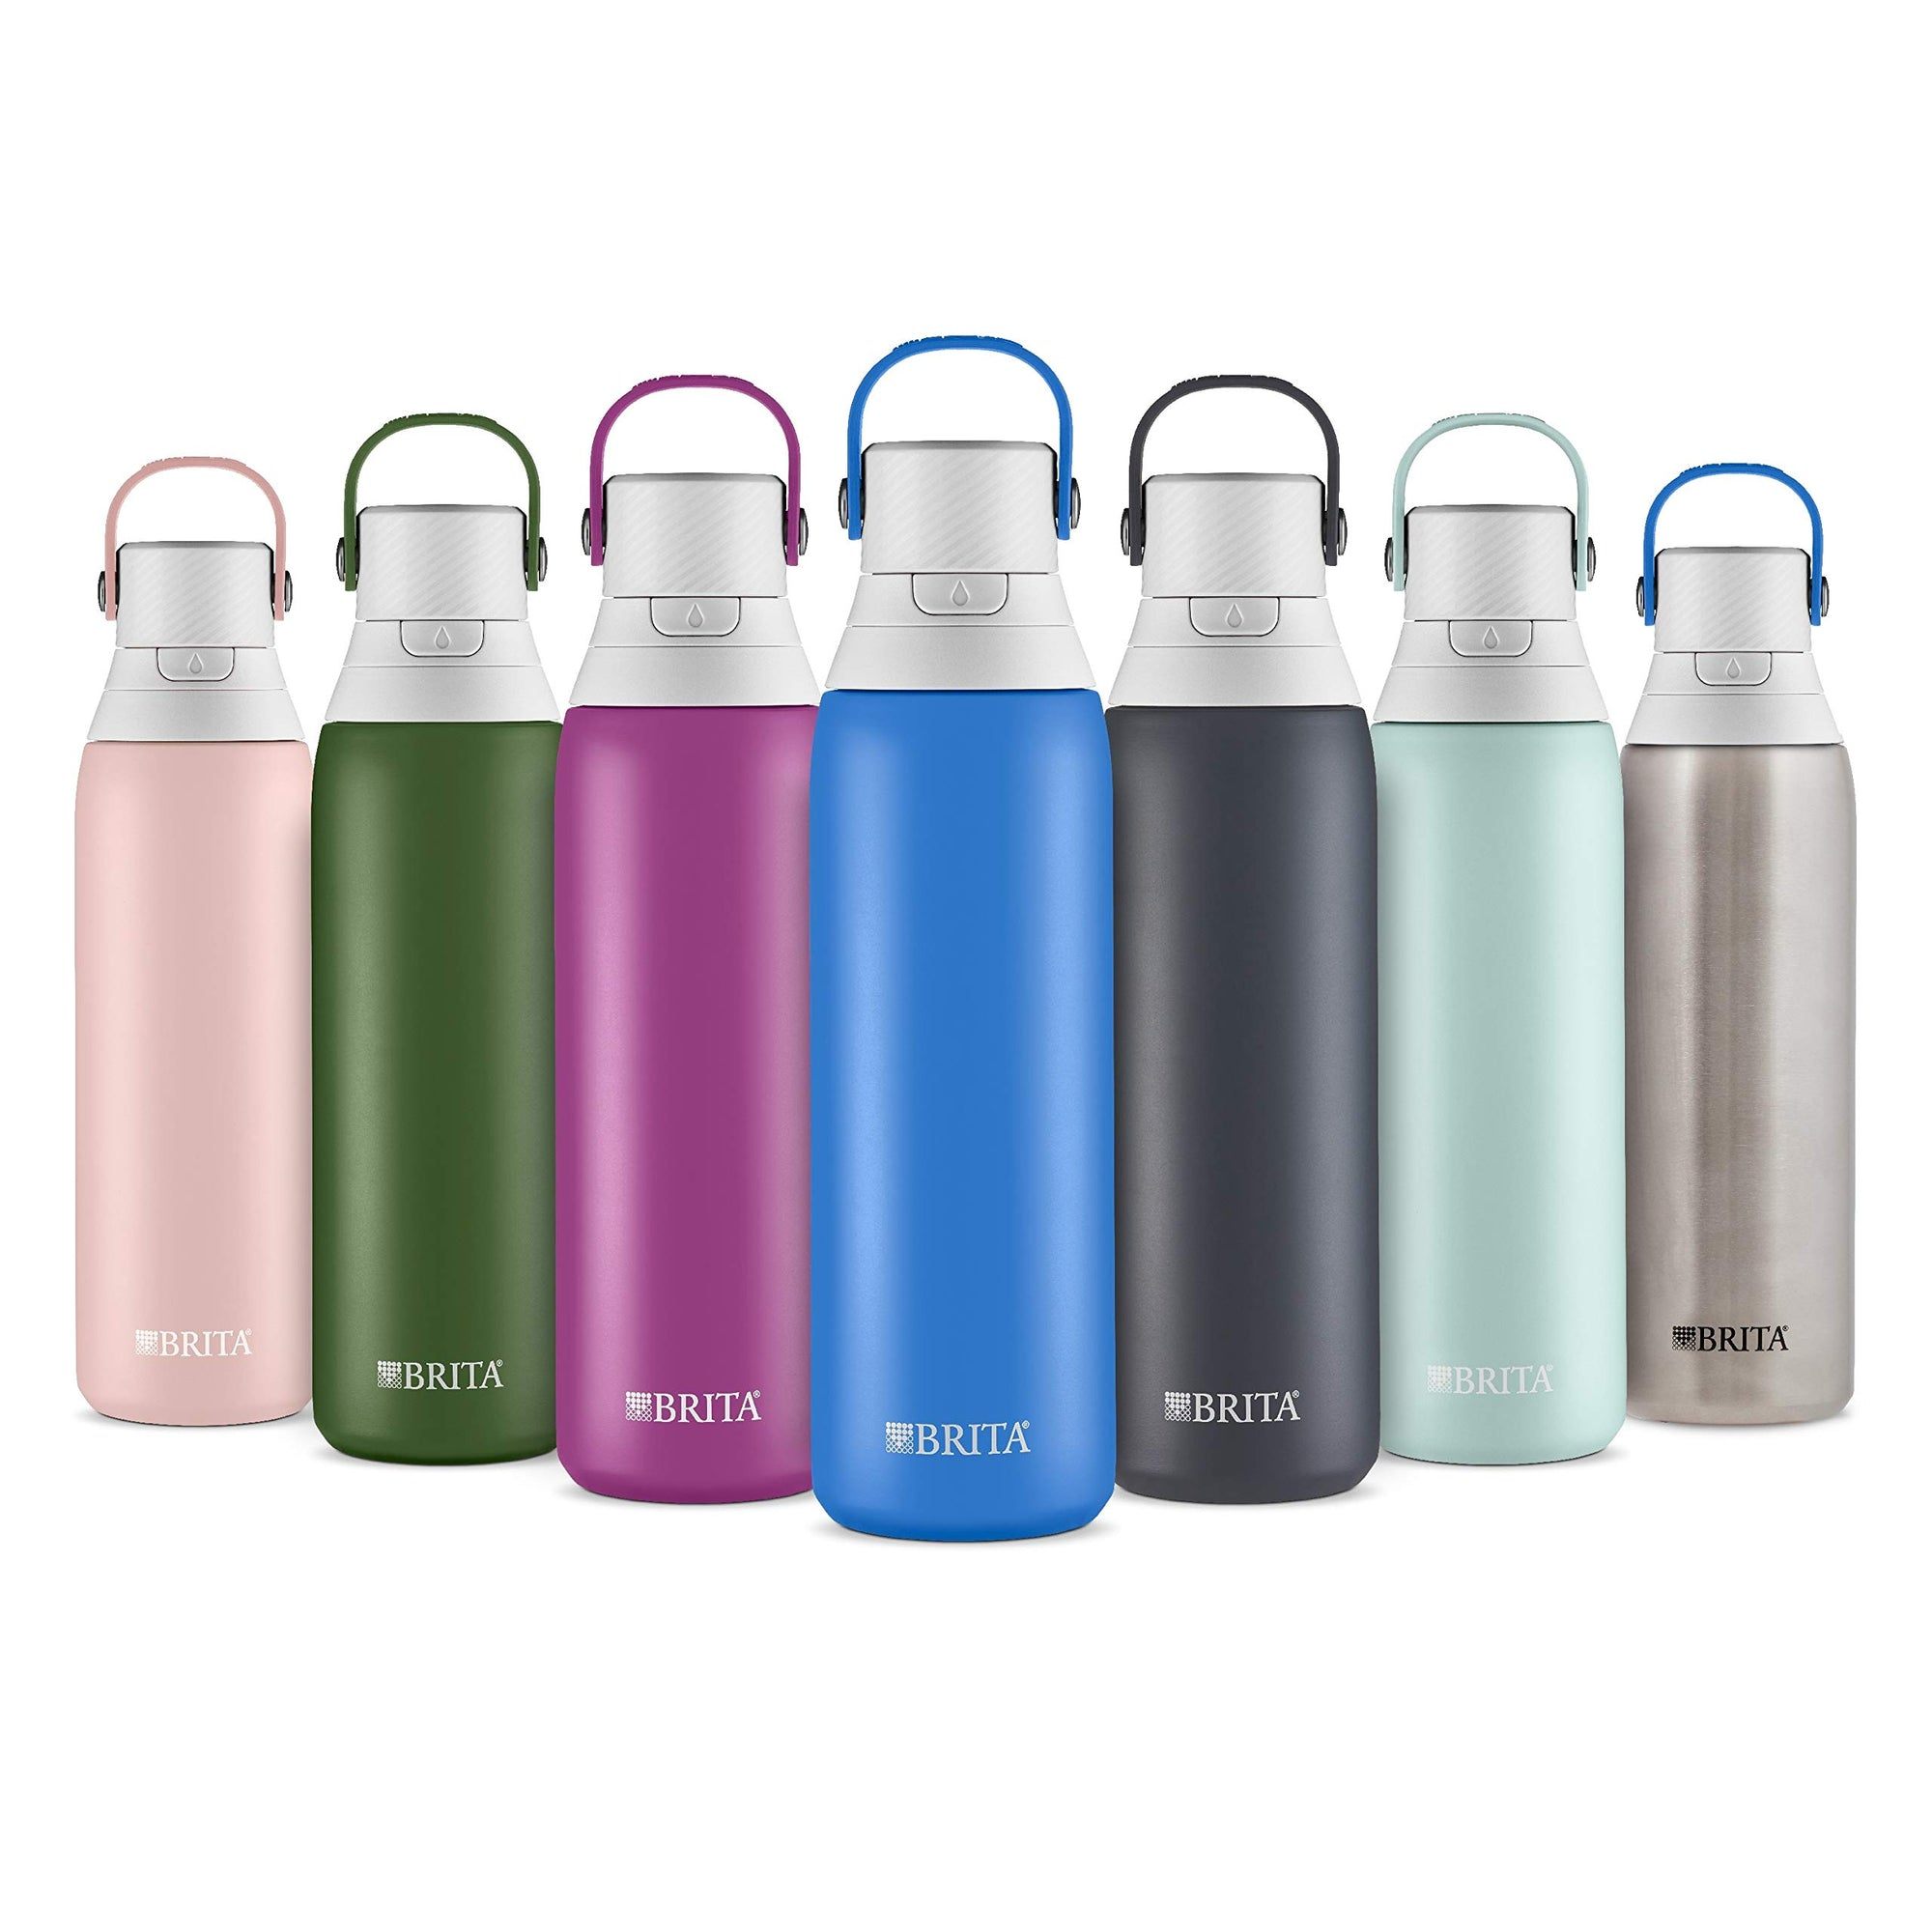 Brita 20 Ounce Premium Filtering Water Bottle with Filter BPA Free - Stainless Steel